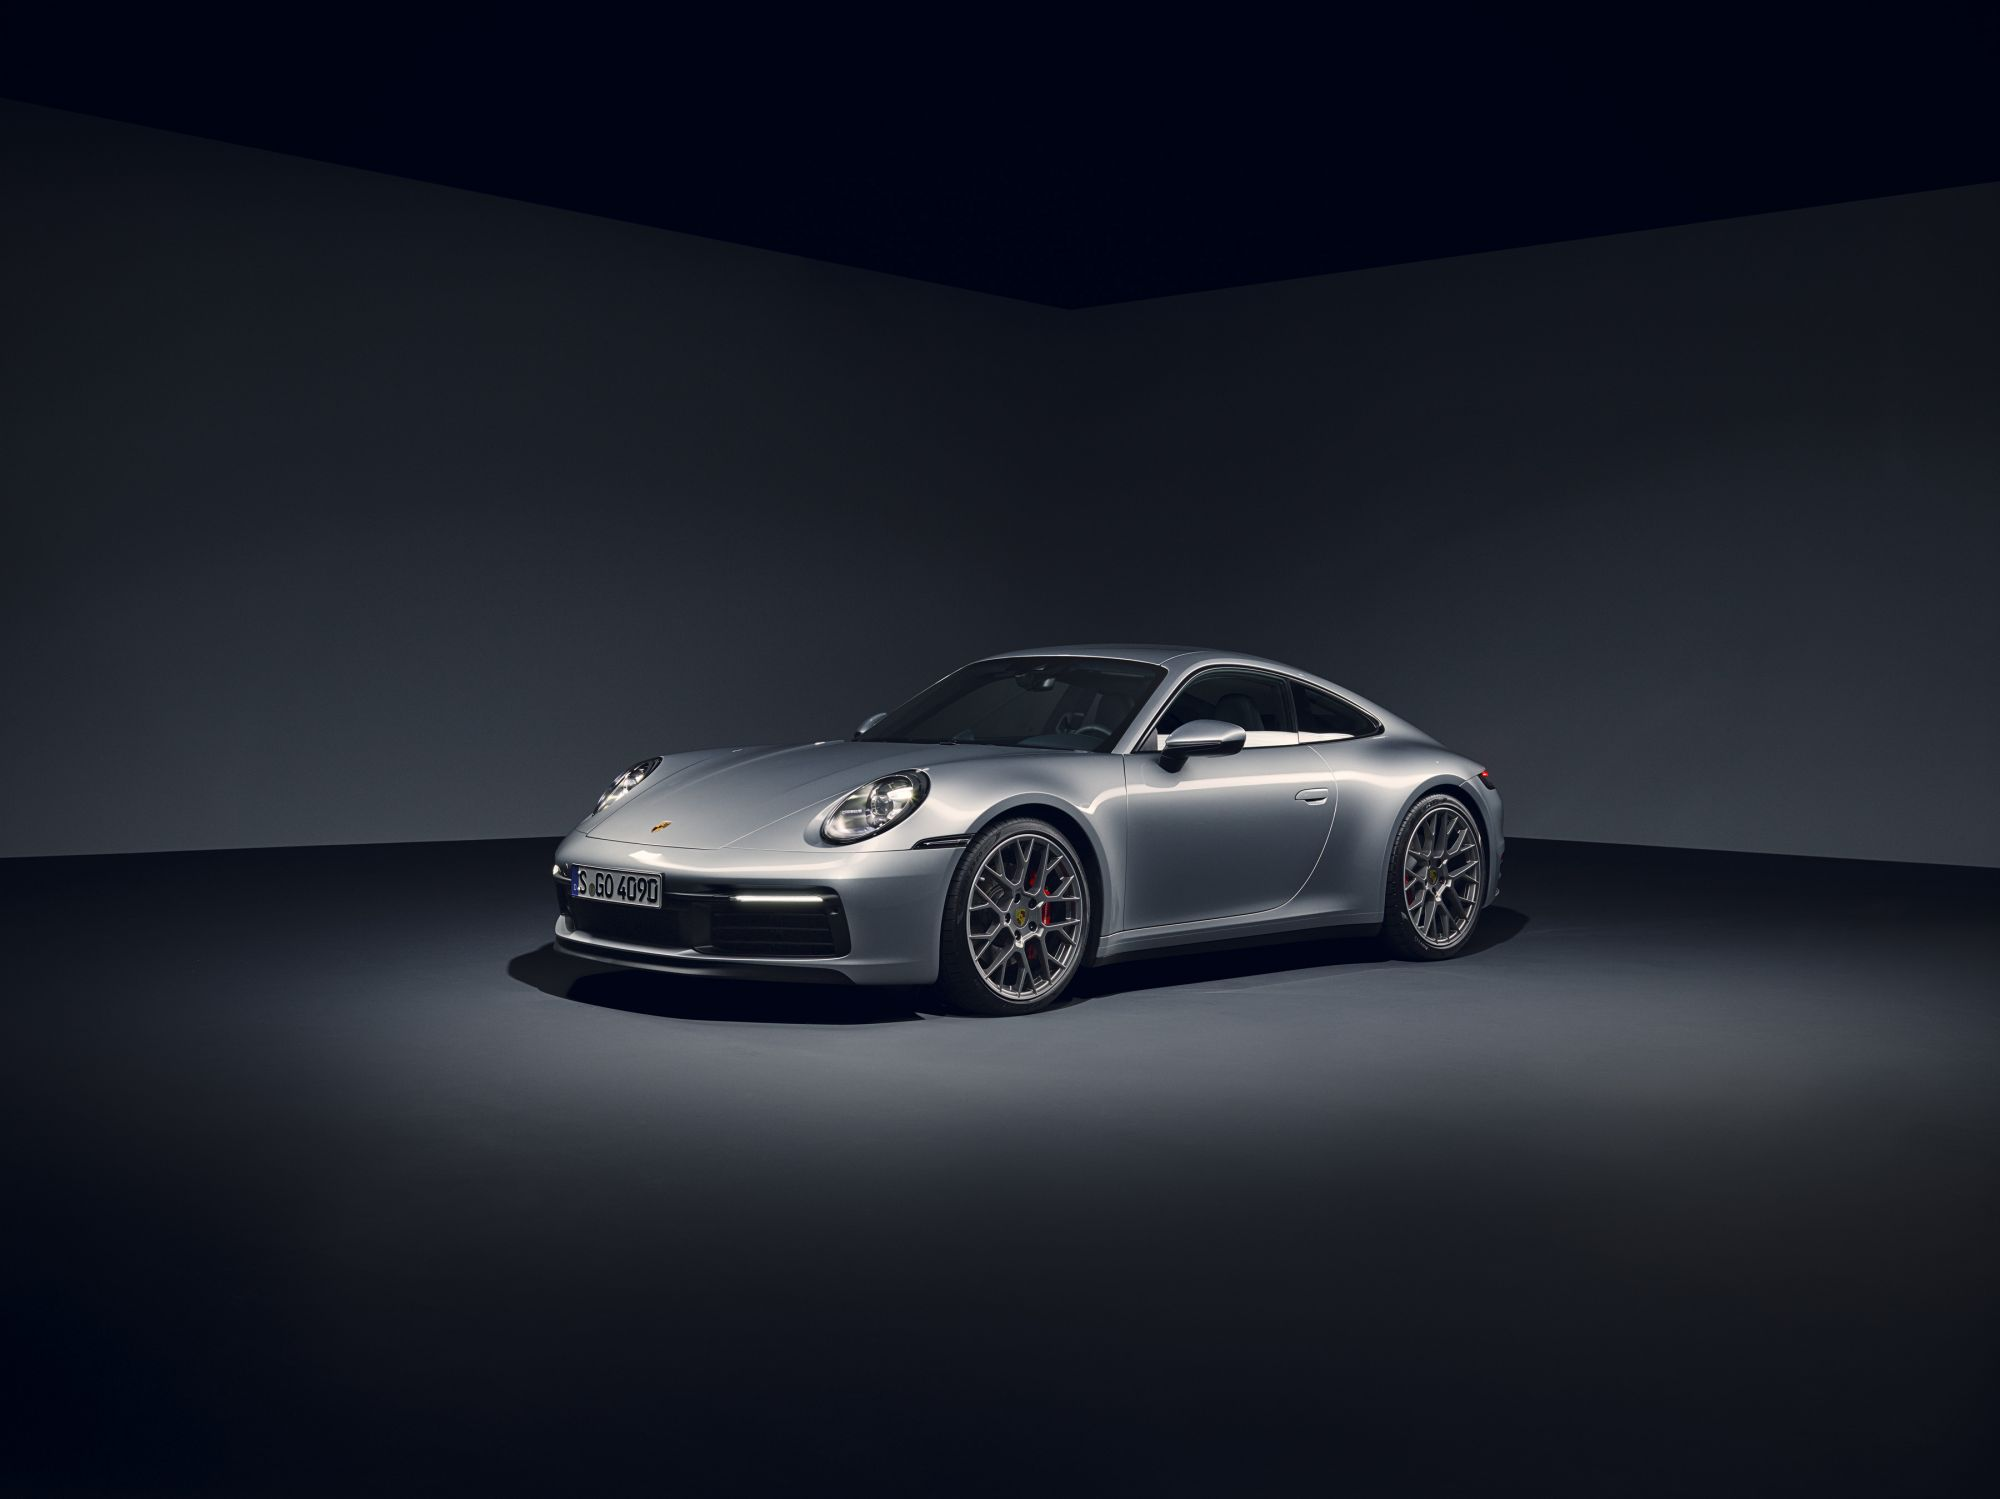 What Makes The New Porsche 911 Different From Its Predecessors